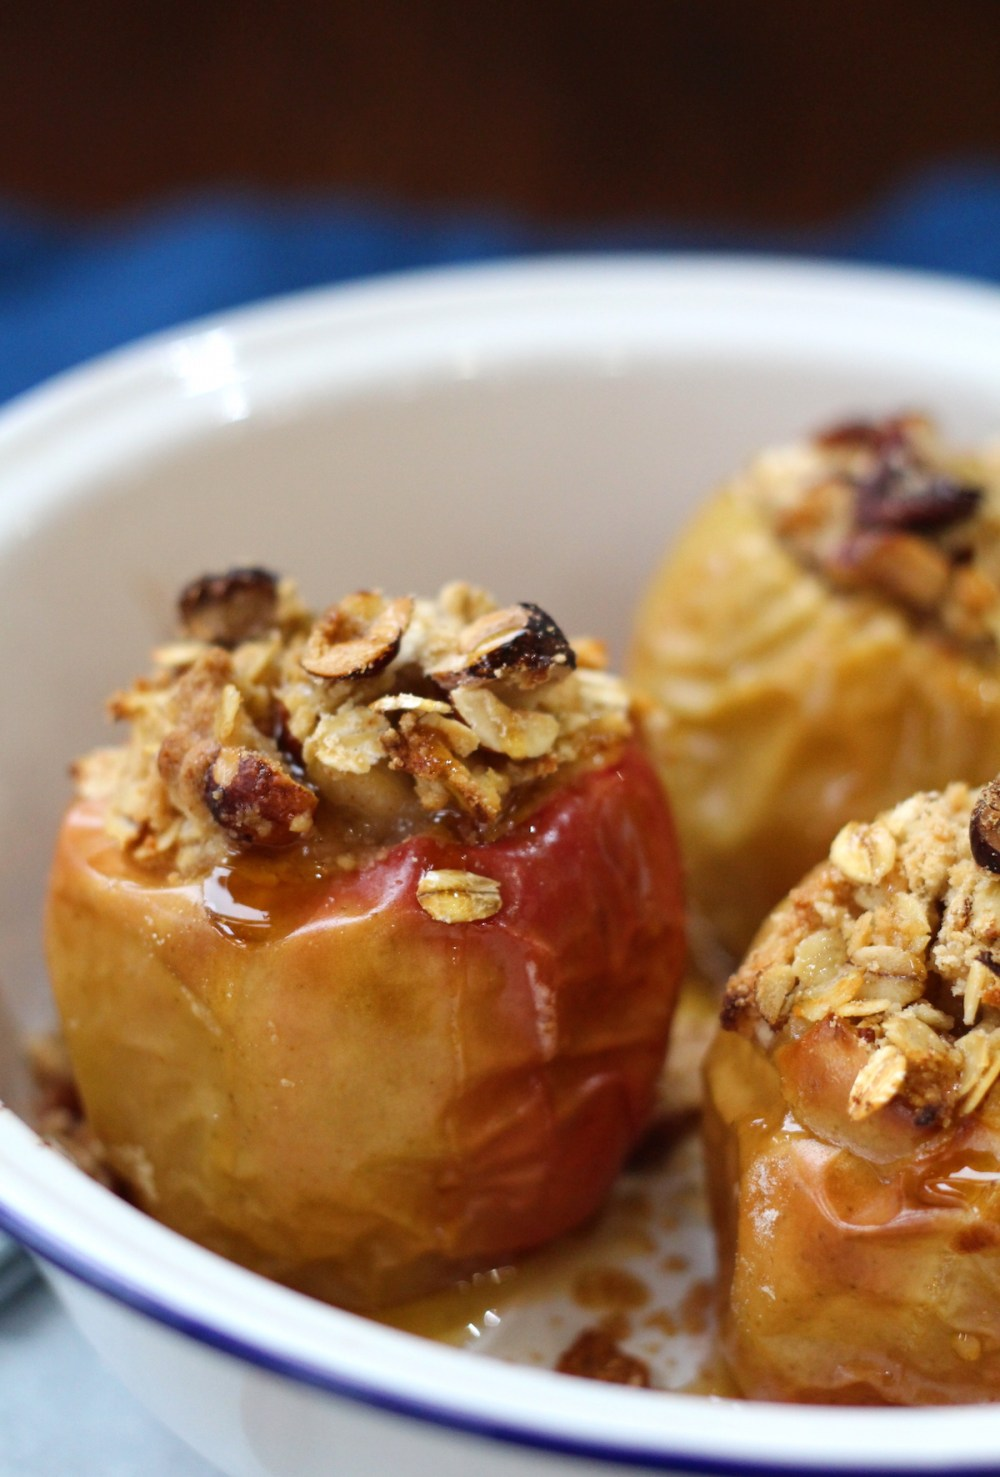 Crumble Baked Apples